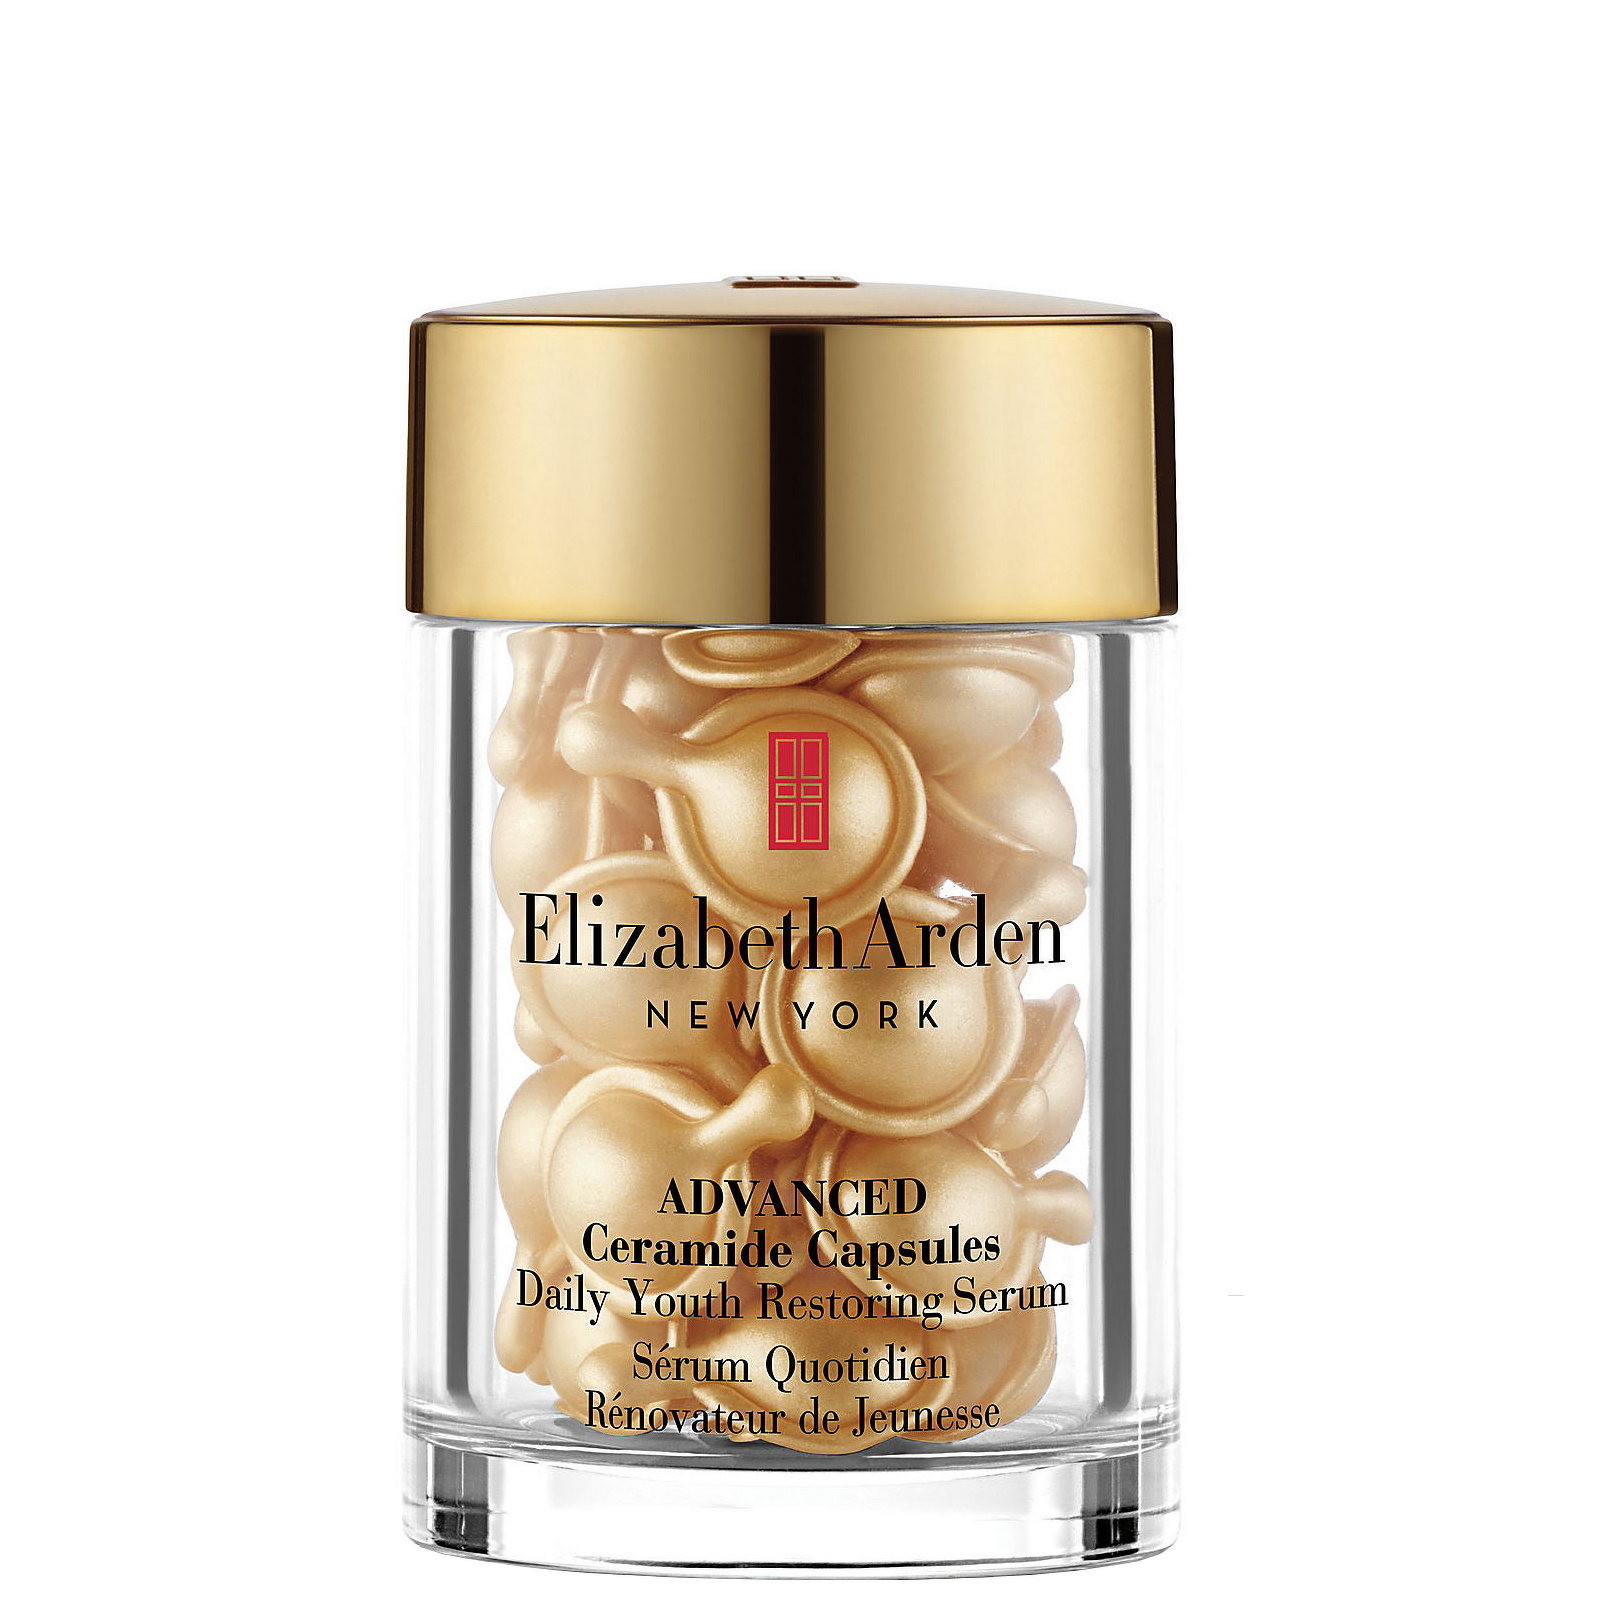 Elizabeth Arden Serums Advanced Ceramide Capsules Daily Youth Restoring Serum x 30